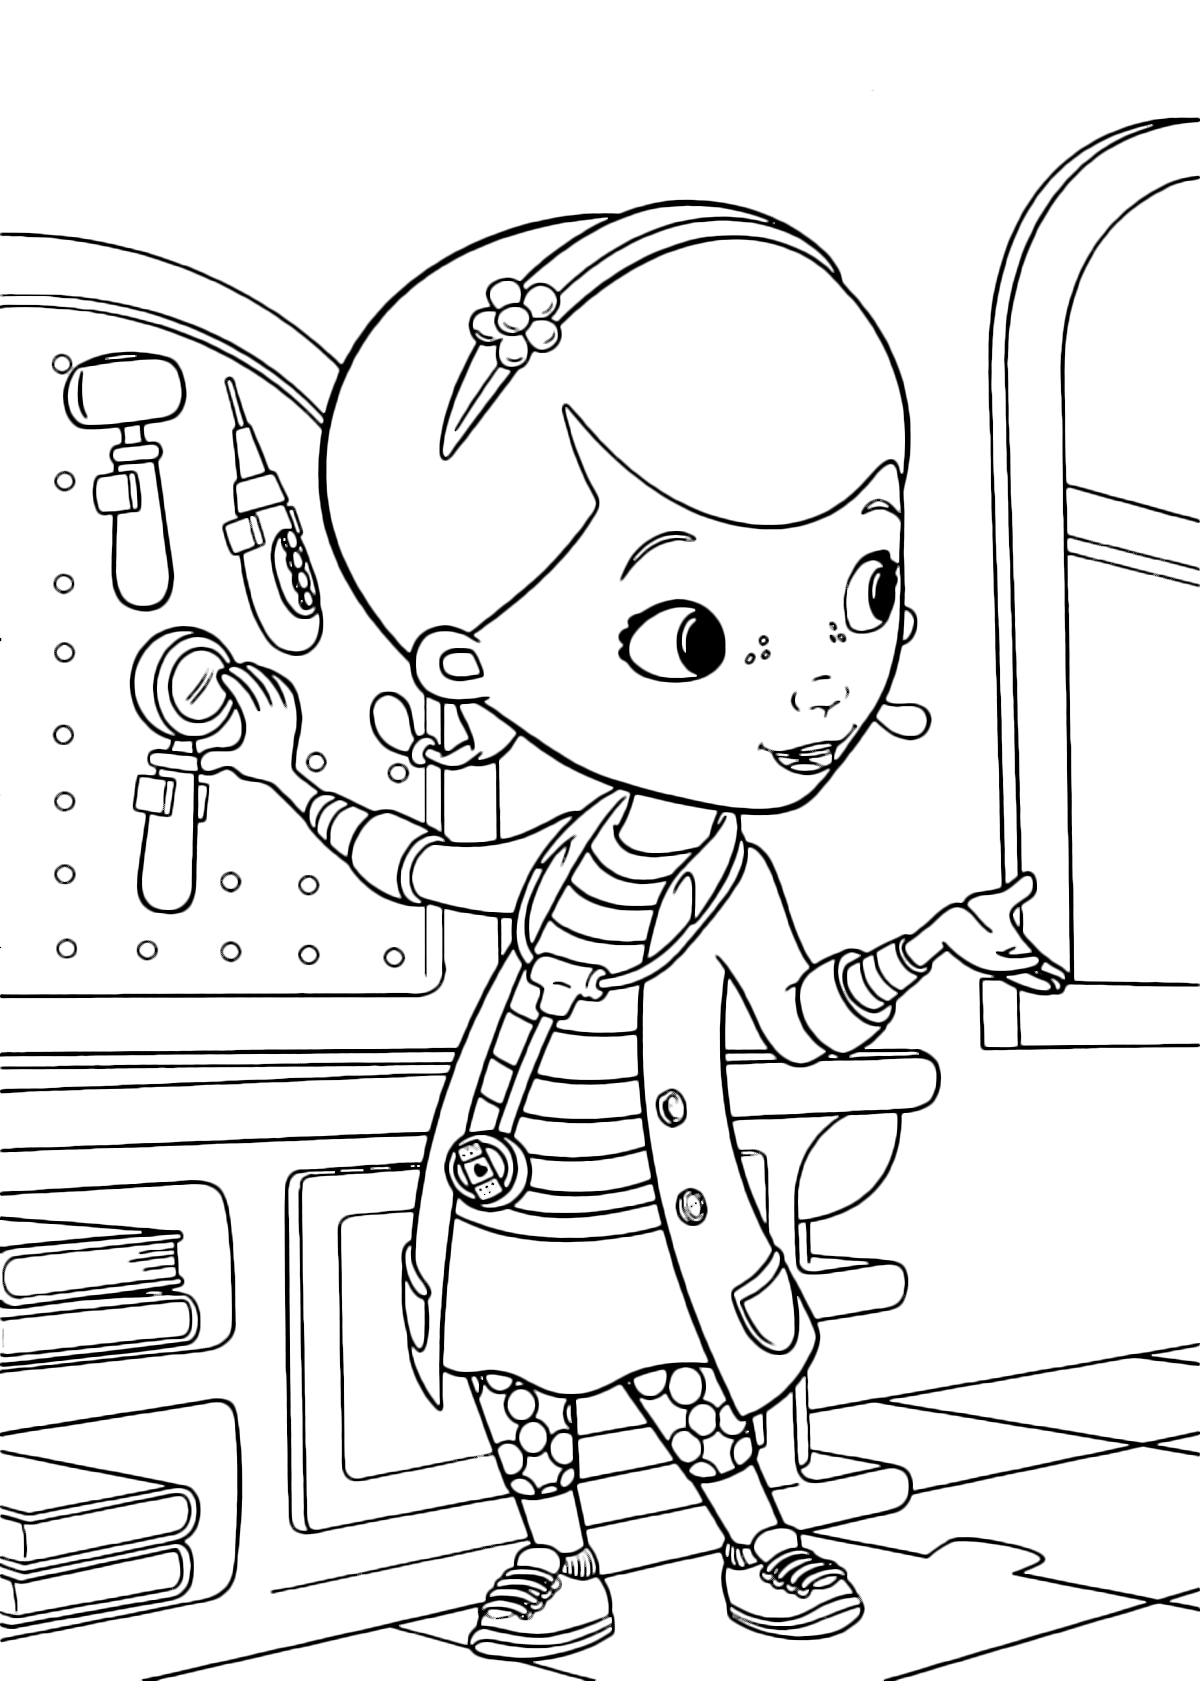 Disney liv and maddie coloring pages coloring pages for Disegni da stampare dottoressa peluche